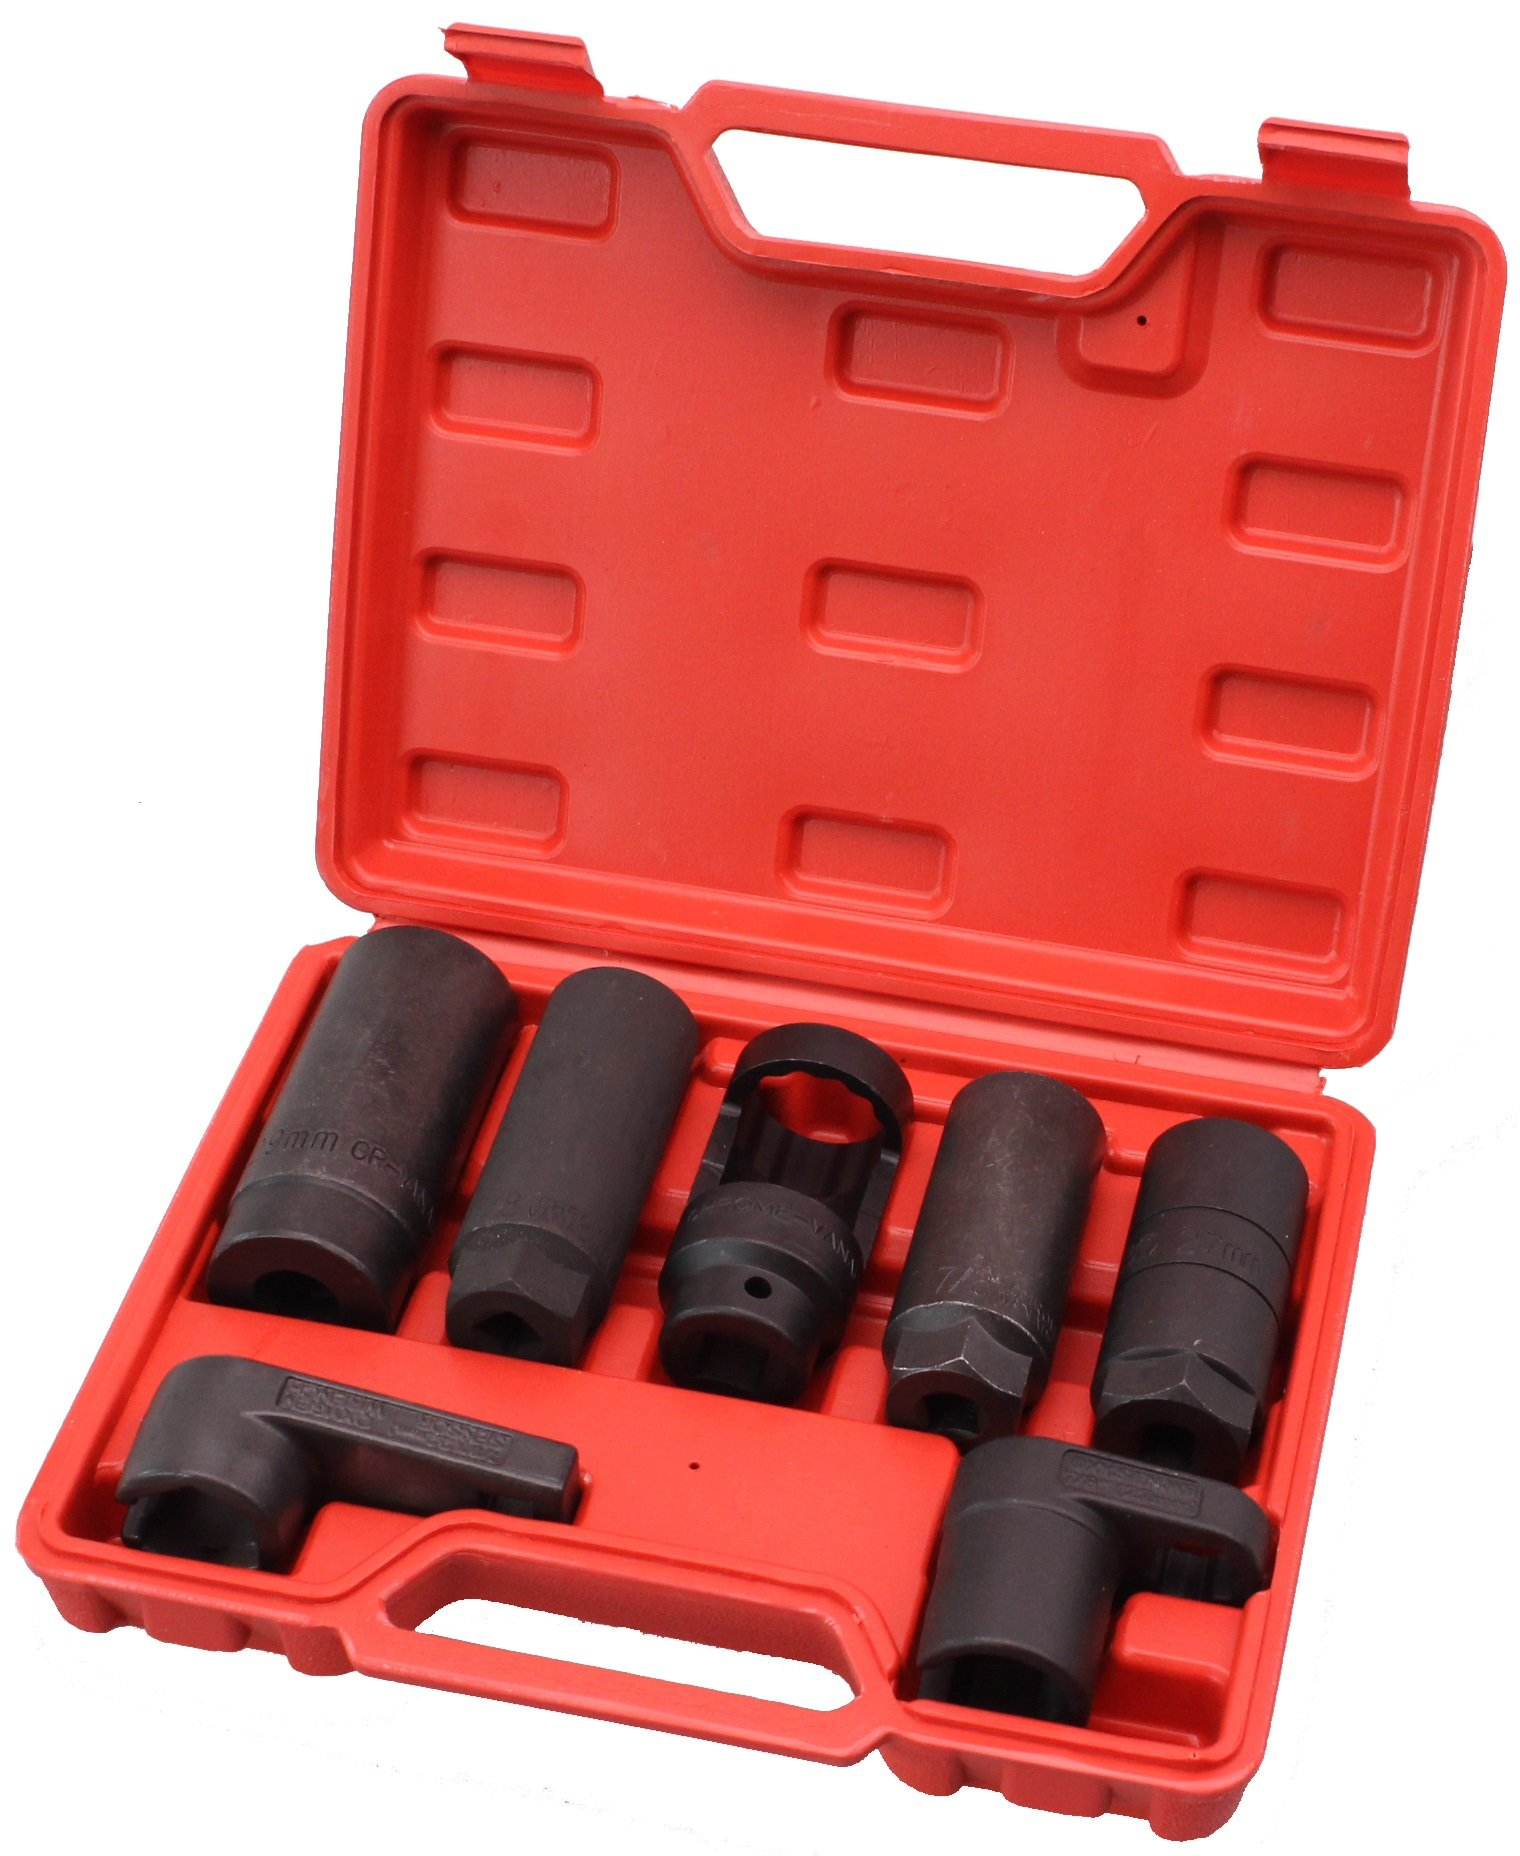 Cartman Automotive Oxygen Sensor Socket Set 7PC Socket Set